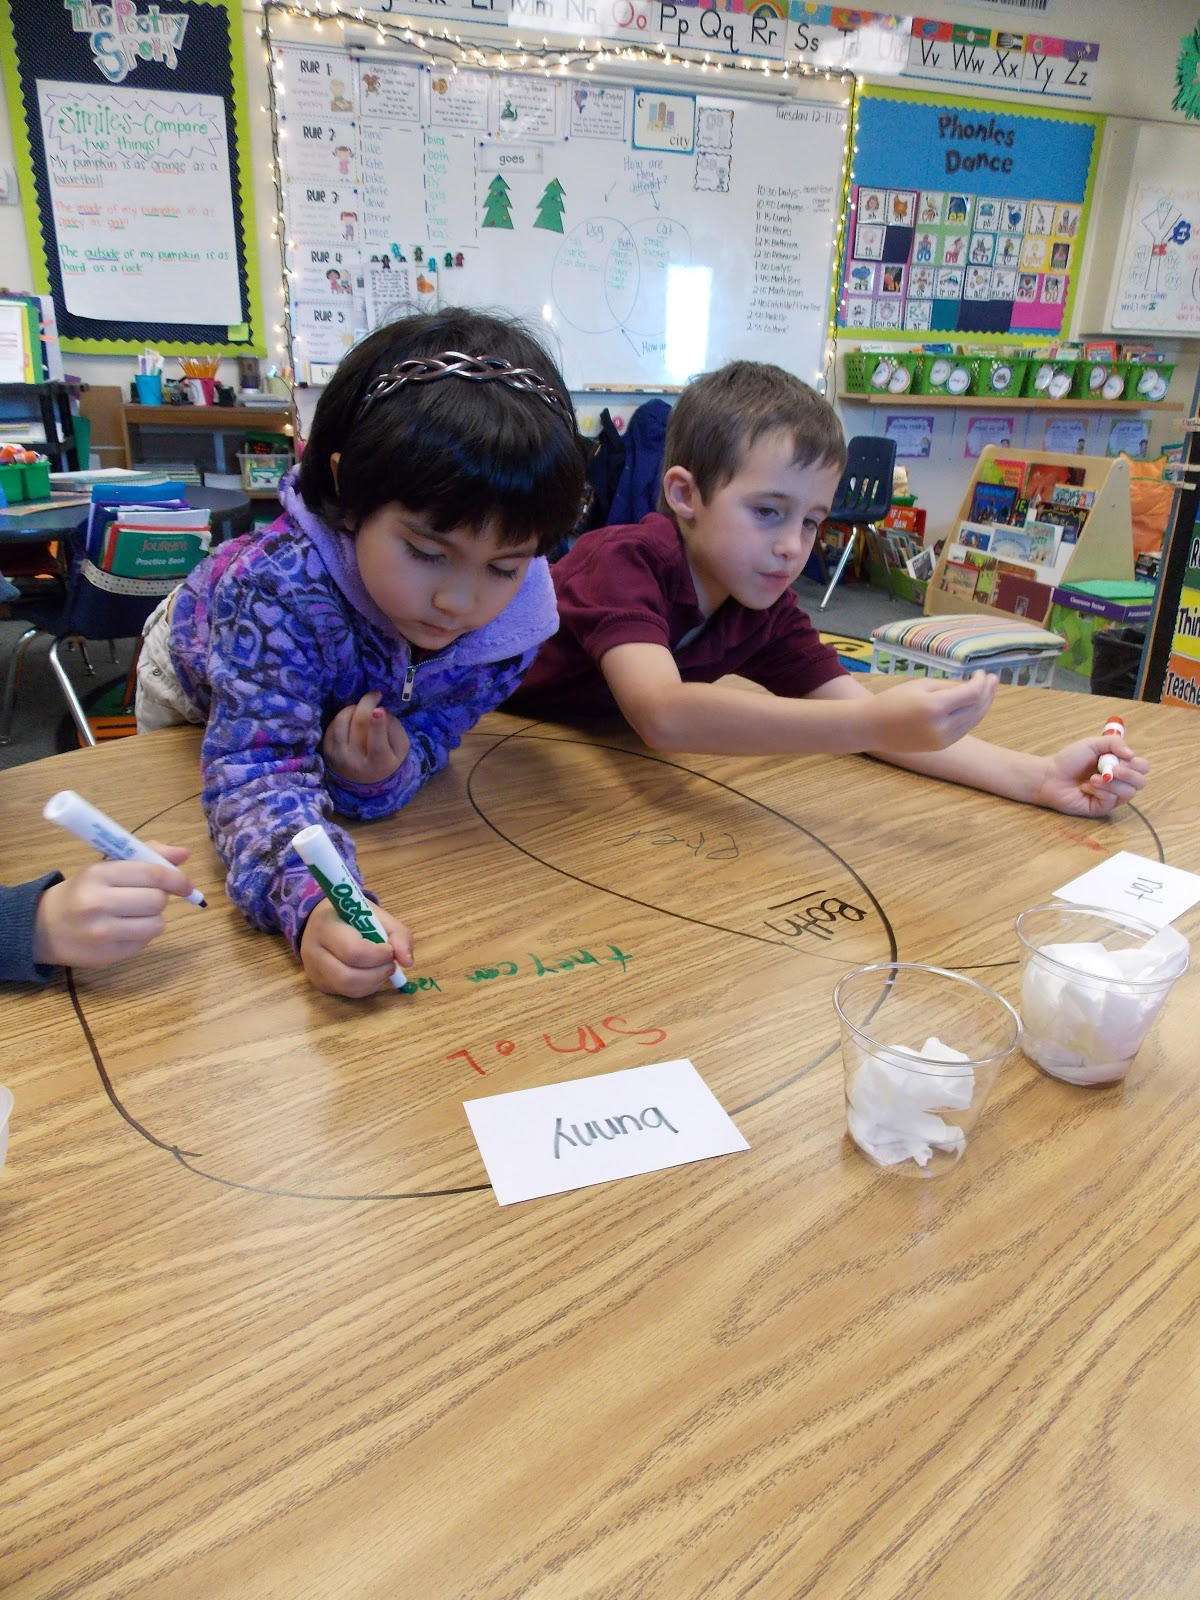 A day in first grade venn diagrams the fun way ccuart Image collections